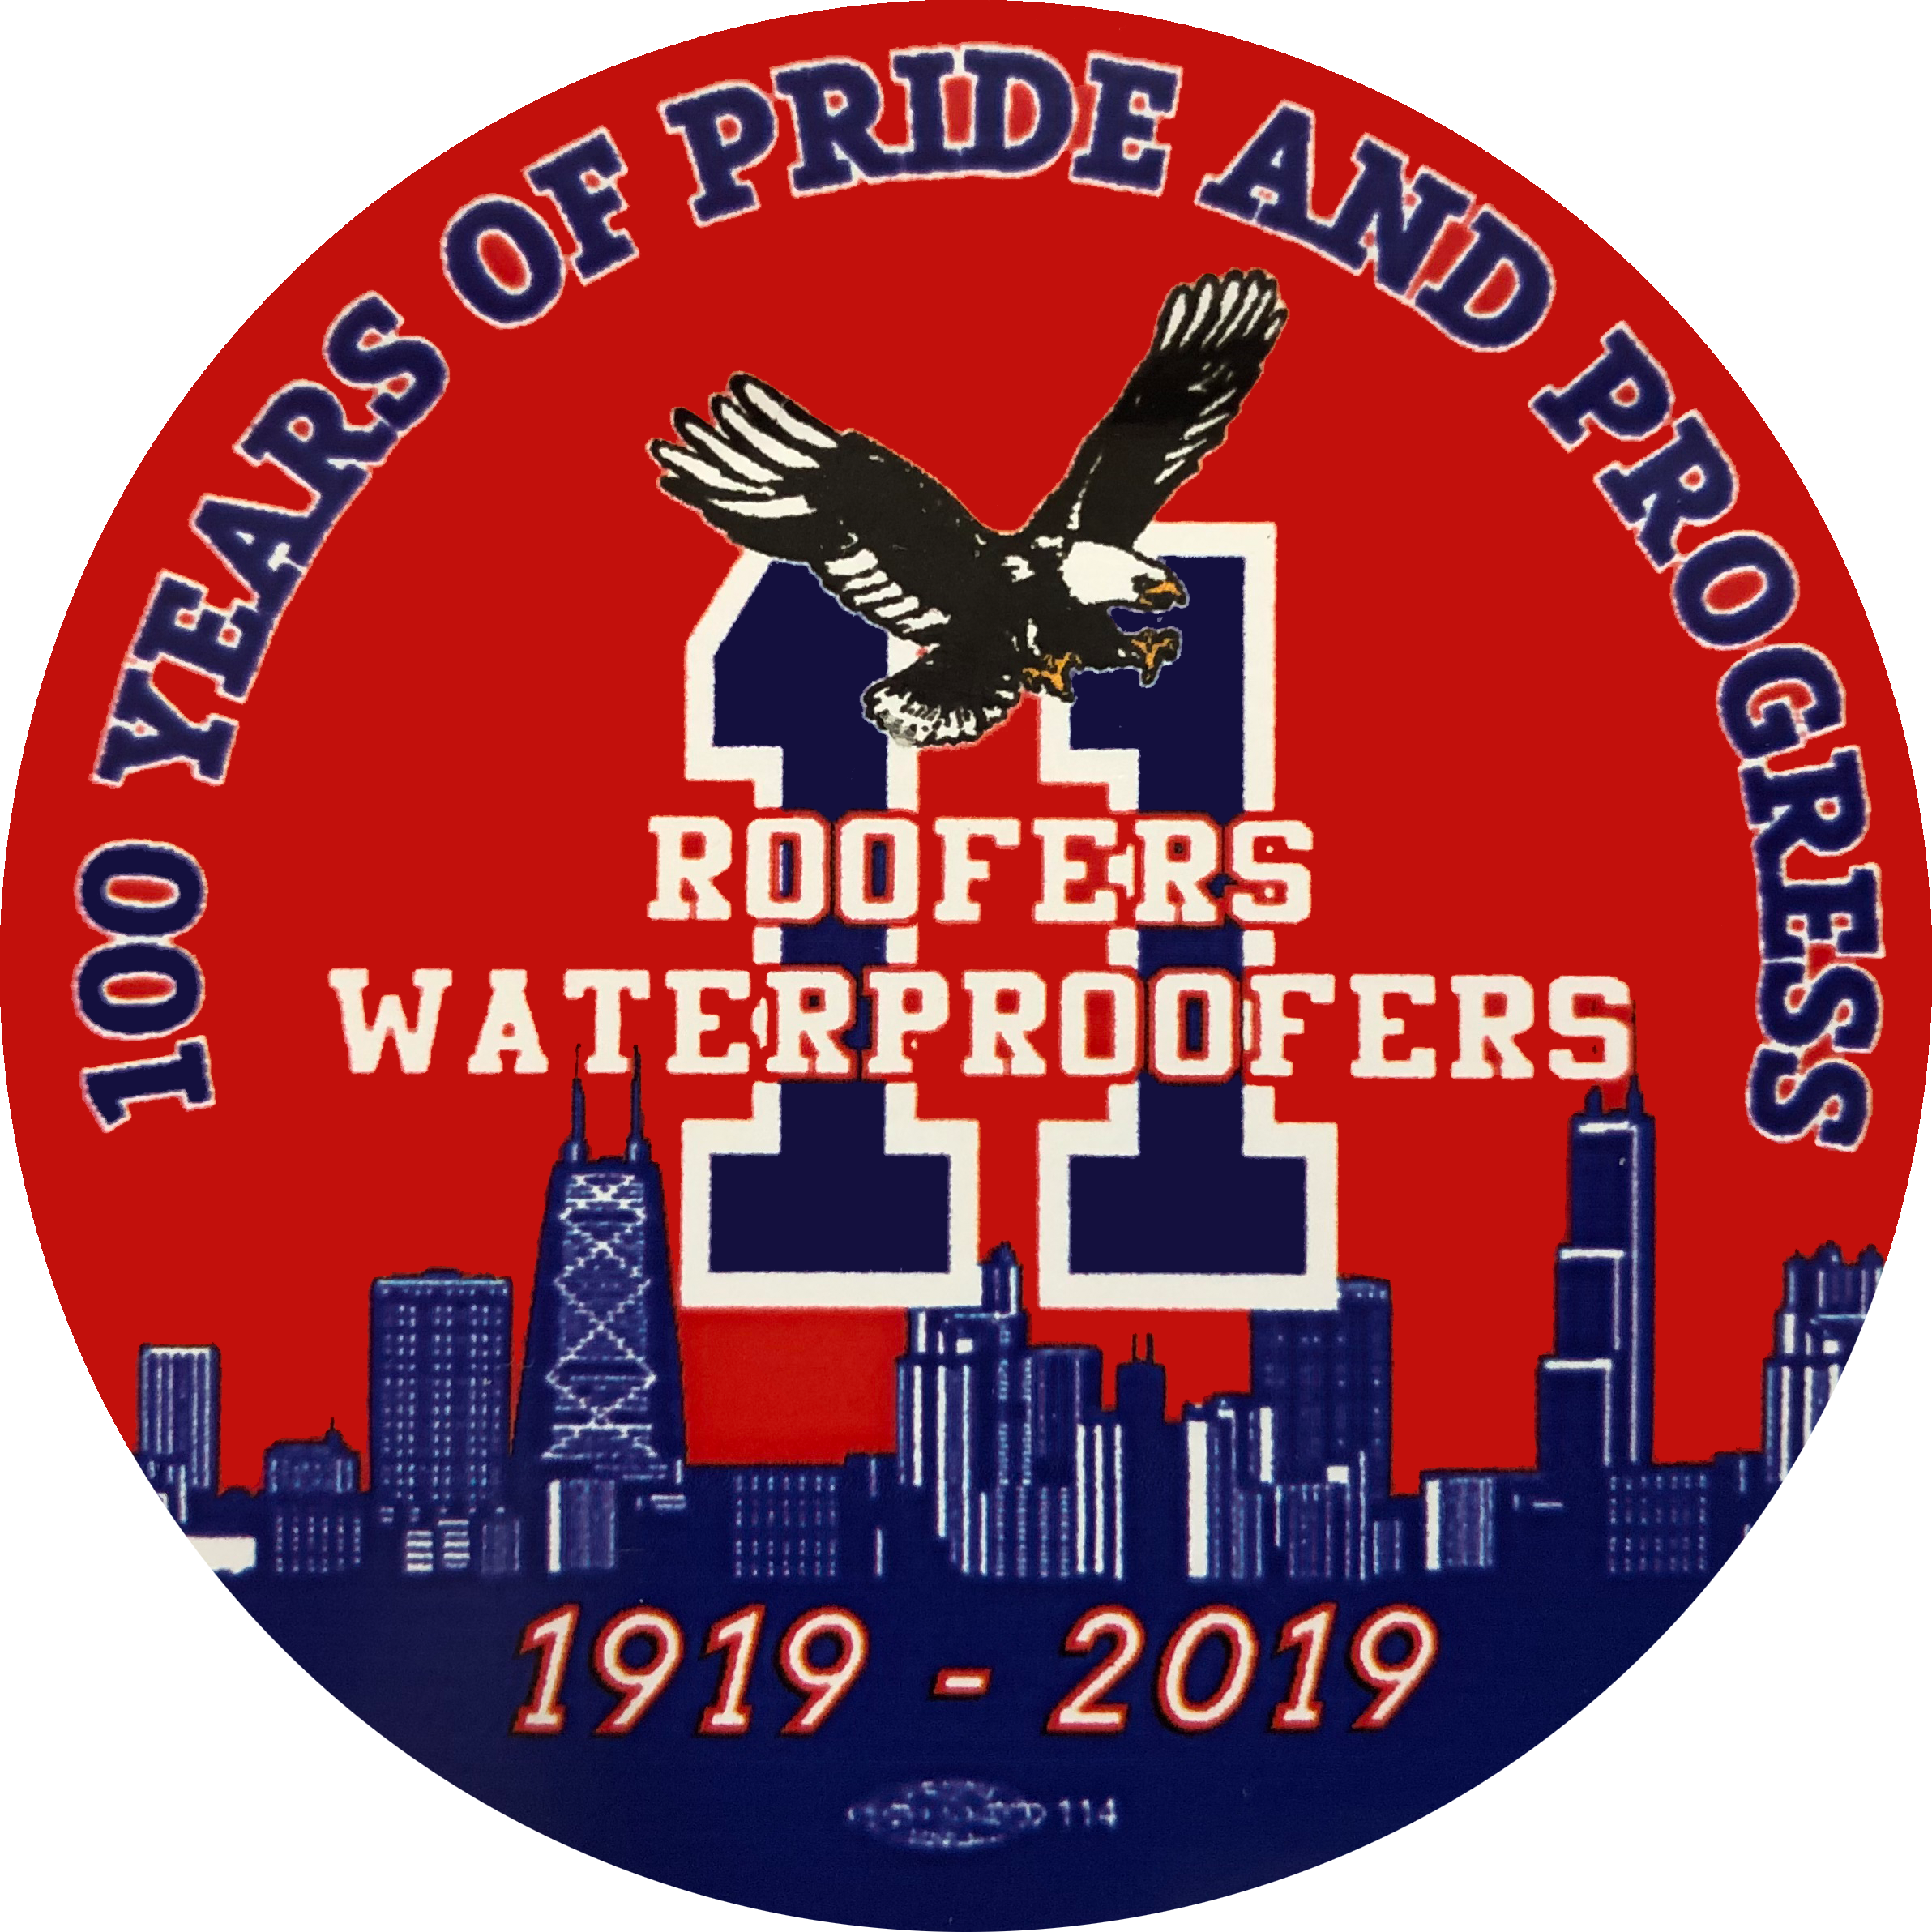 Hole Sponsor (Sponsor's Sign @ the Hole) - Chicago Roofers & Waterproofers Charitable Foundation Local 11 - Logo